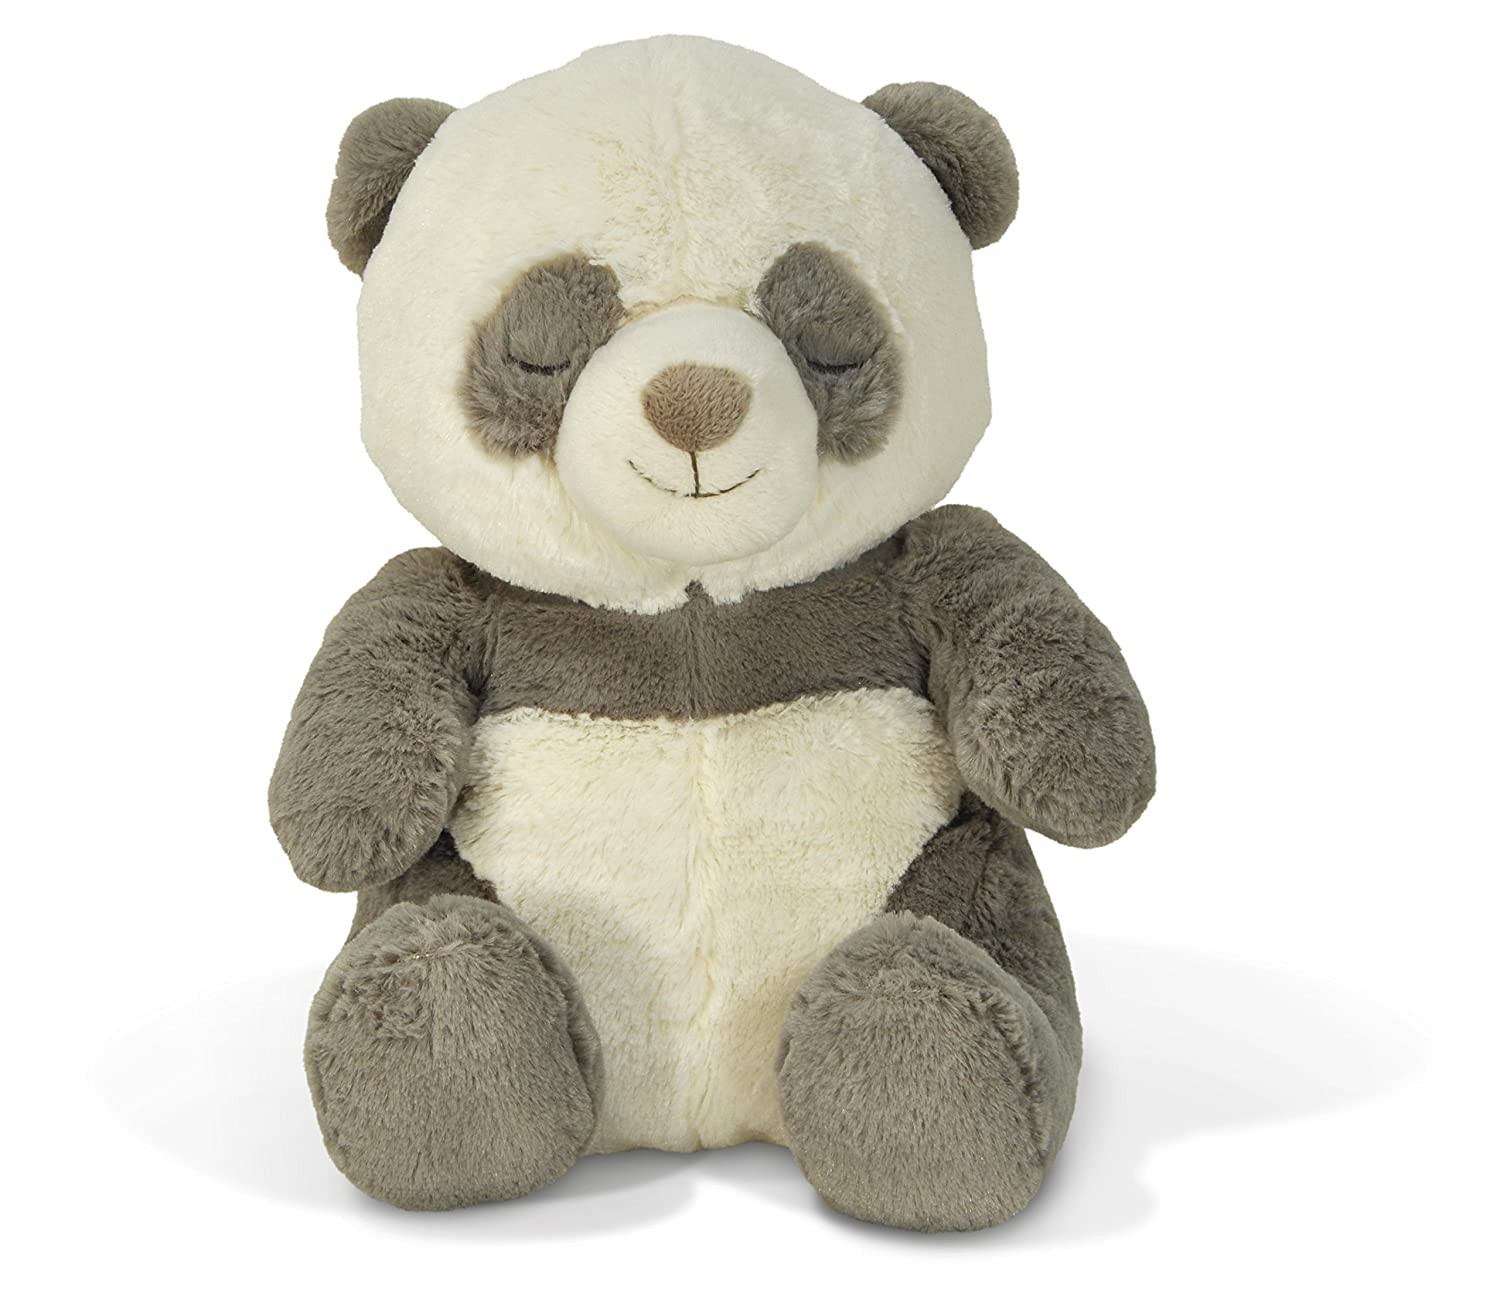 Cloud b Soothing Sound Machine White Stuffed Price reduction 4 Animal New products world's highest quality popular Cuddly